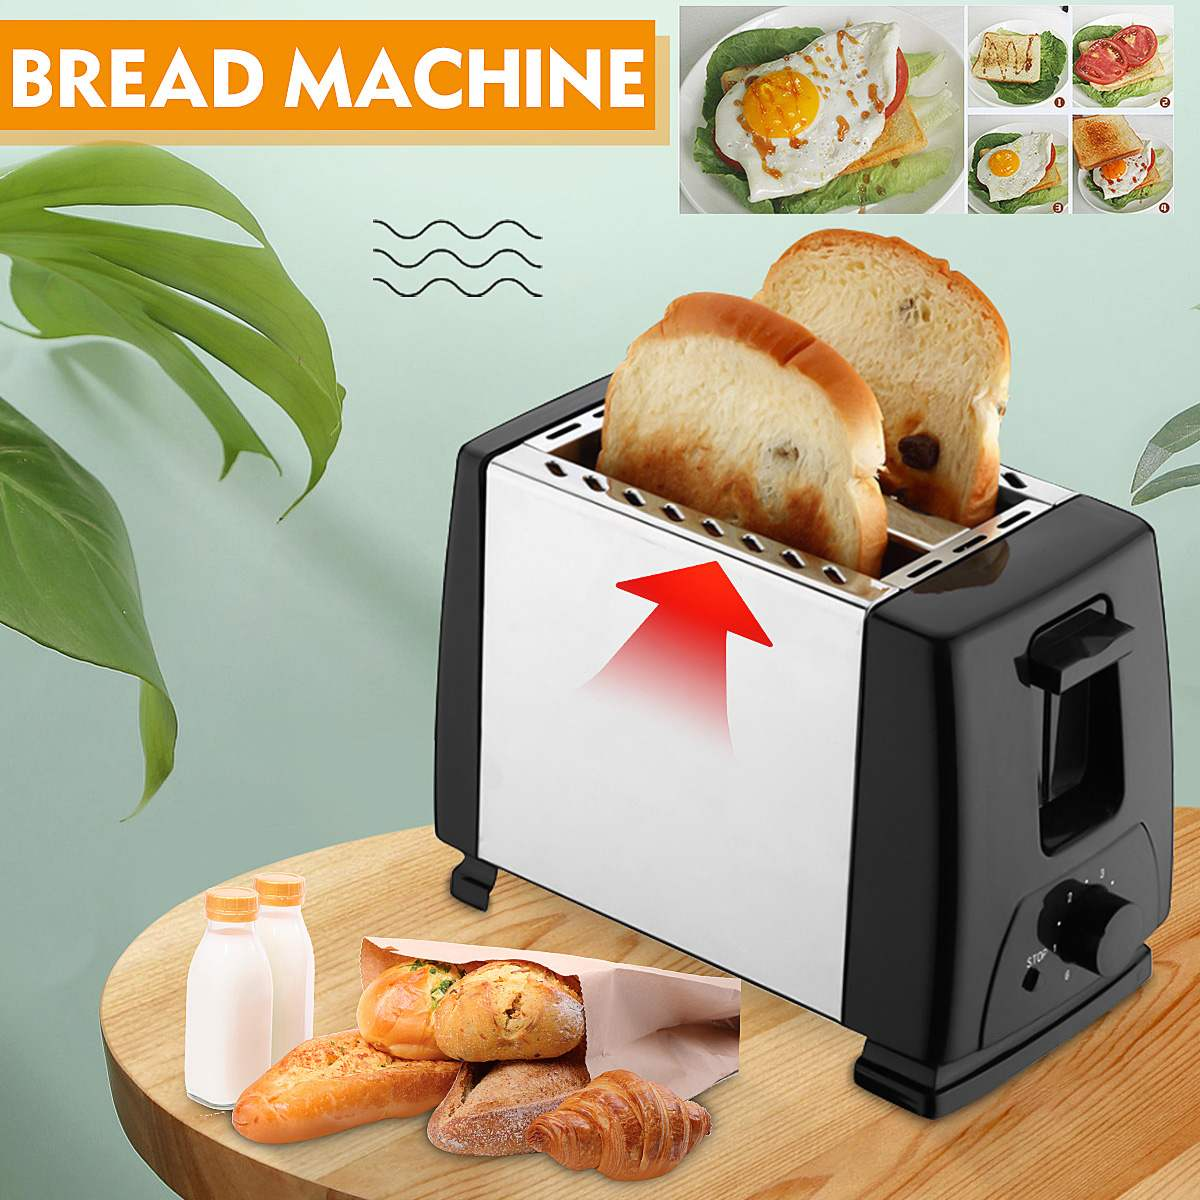 750W Bread Baker Machine Electric Toaster Household Kitchen Automatic Breakfast Maker 6 Timing Gears 2pcs Bread Slot